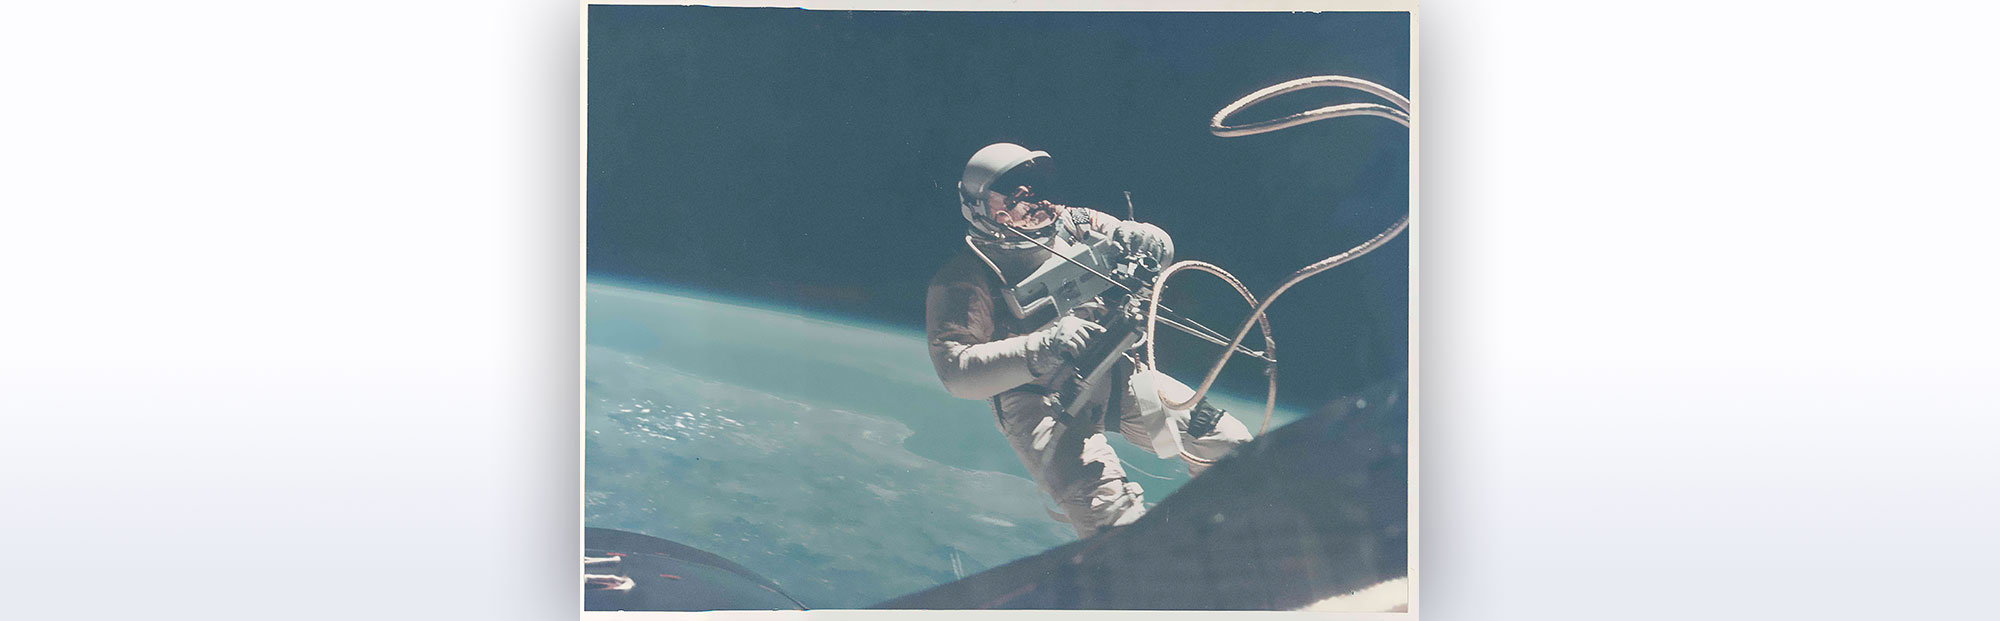 Exploring the Cosmos: An Important Sale of Vintage NASA Photography